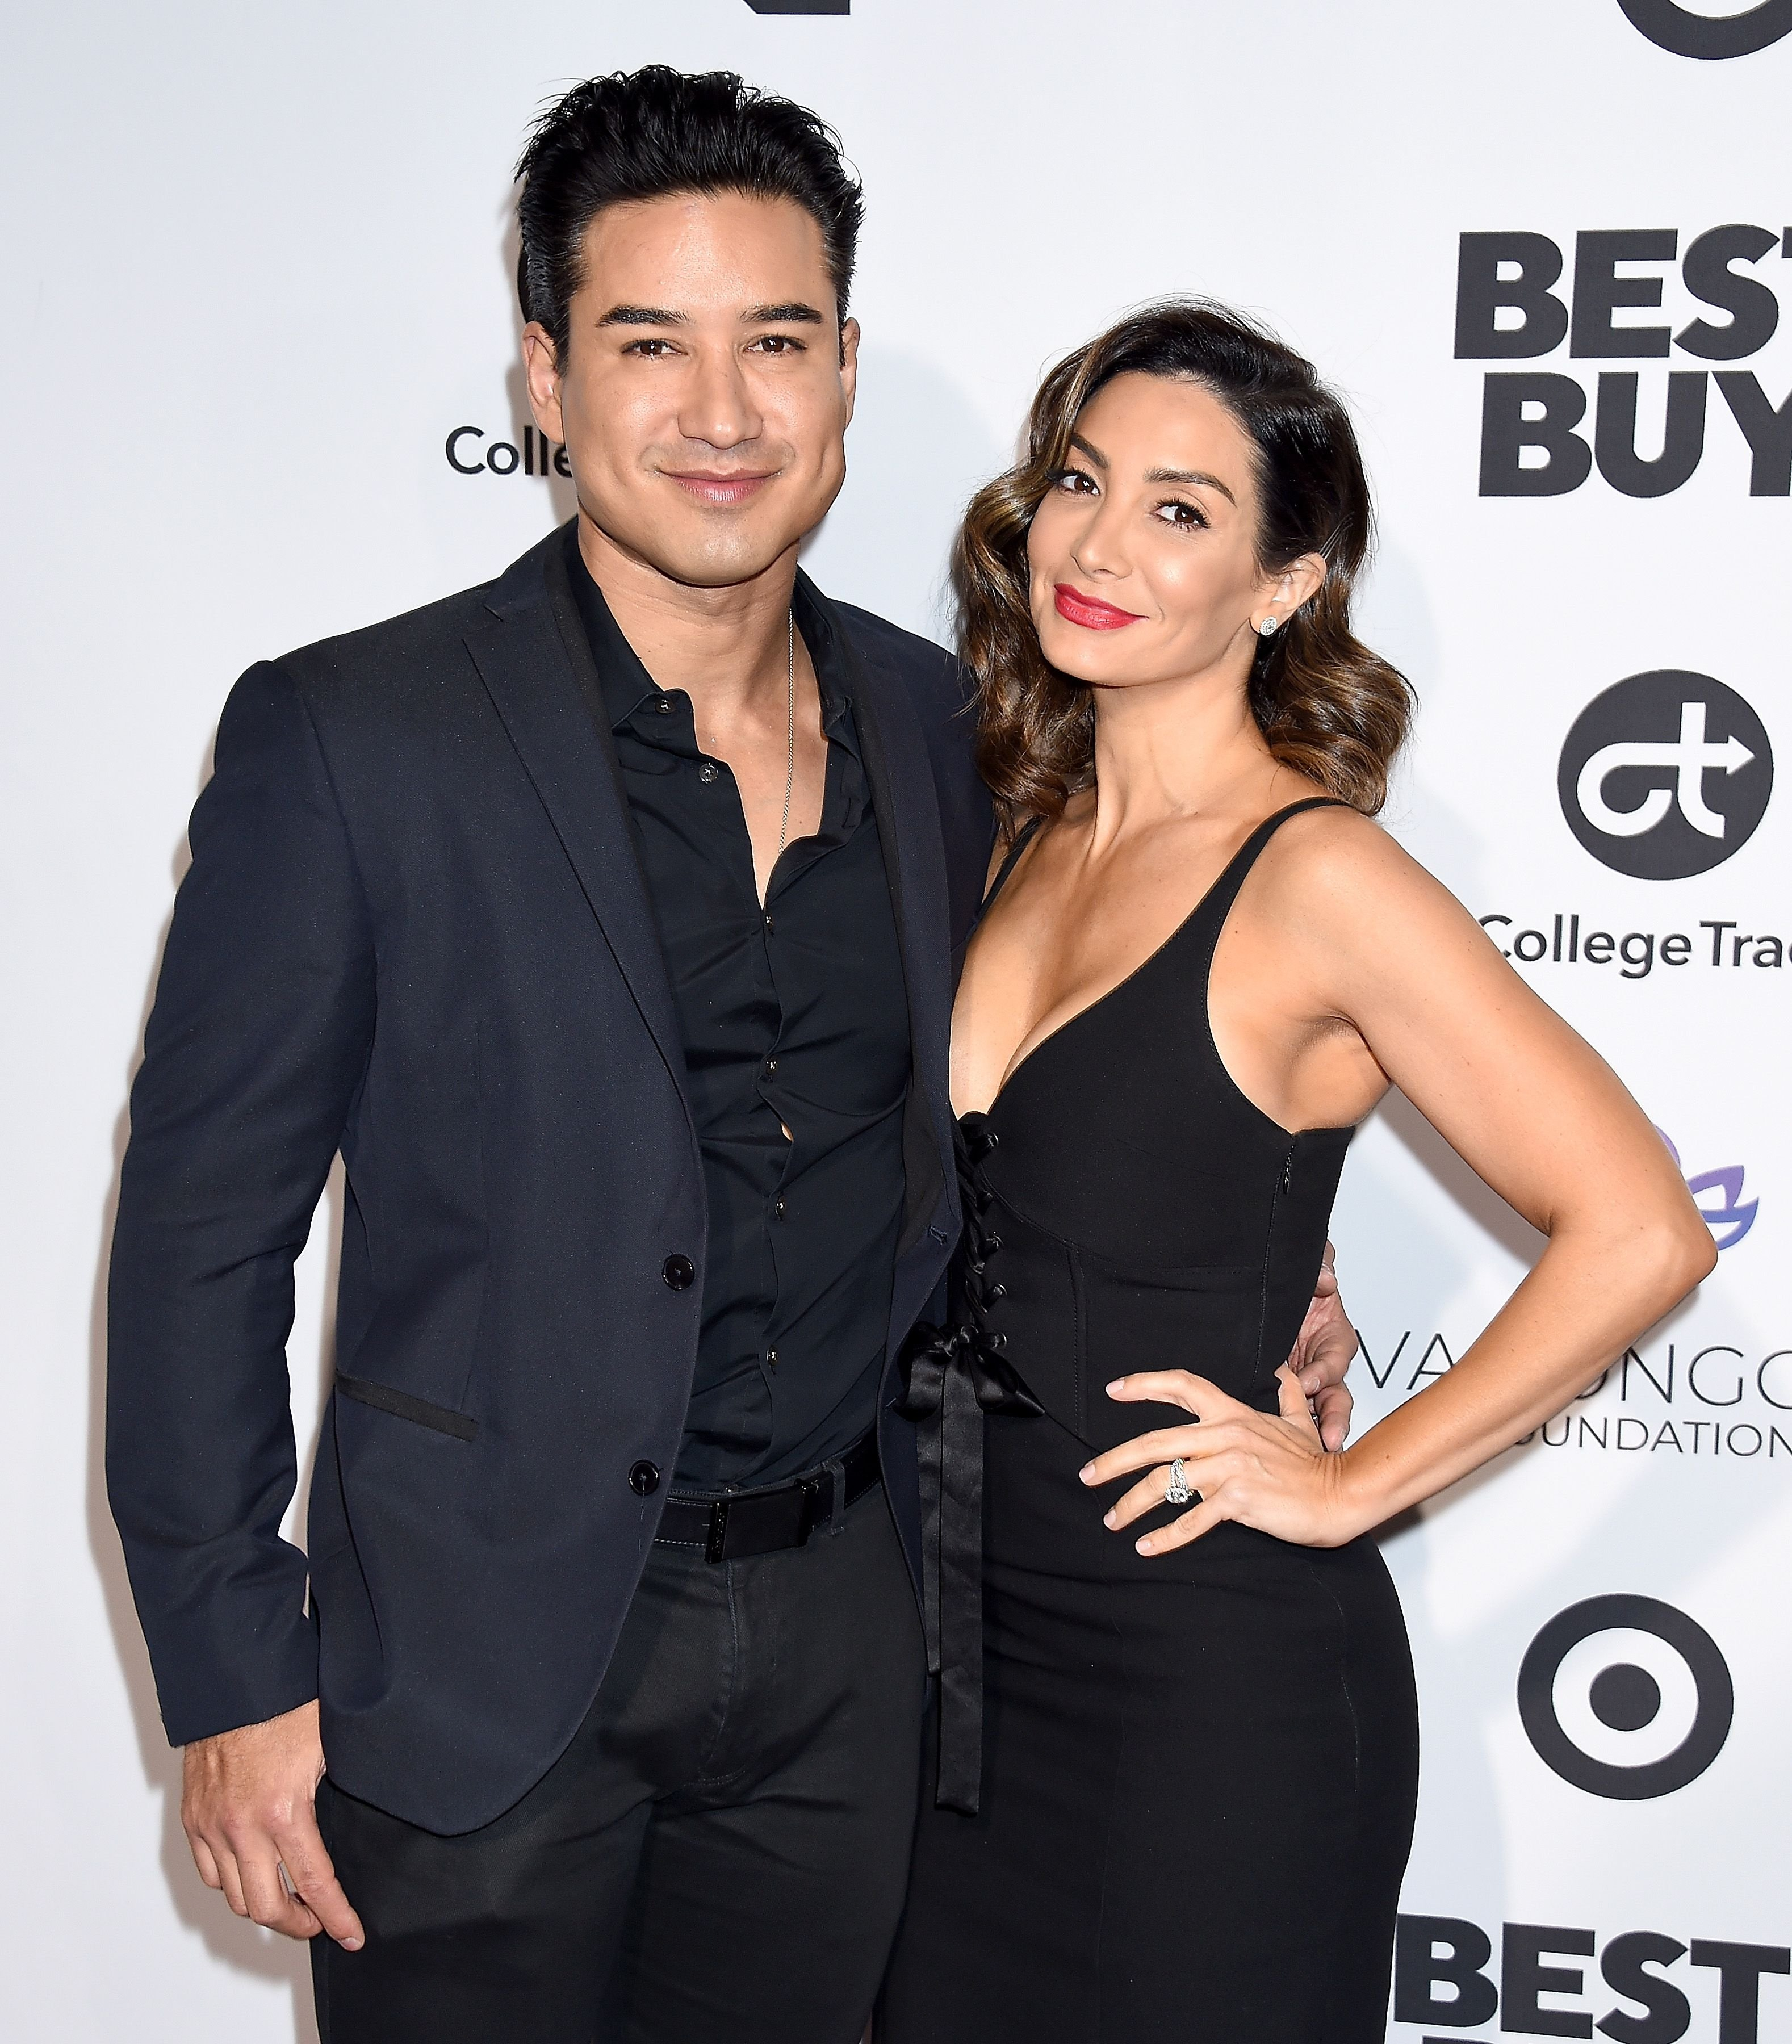 Mario Lopez and Courtney Laine Mazza at the Eva Longoria Foundation Dinner Gala at Four Seasons Hotel Los Angeles at Beverly Hills on November 8, 2018 | Photo: Getty Images